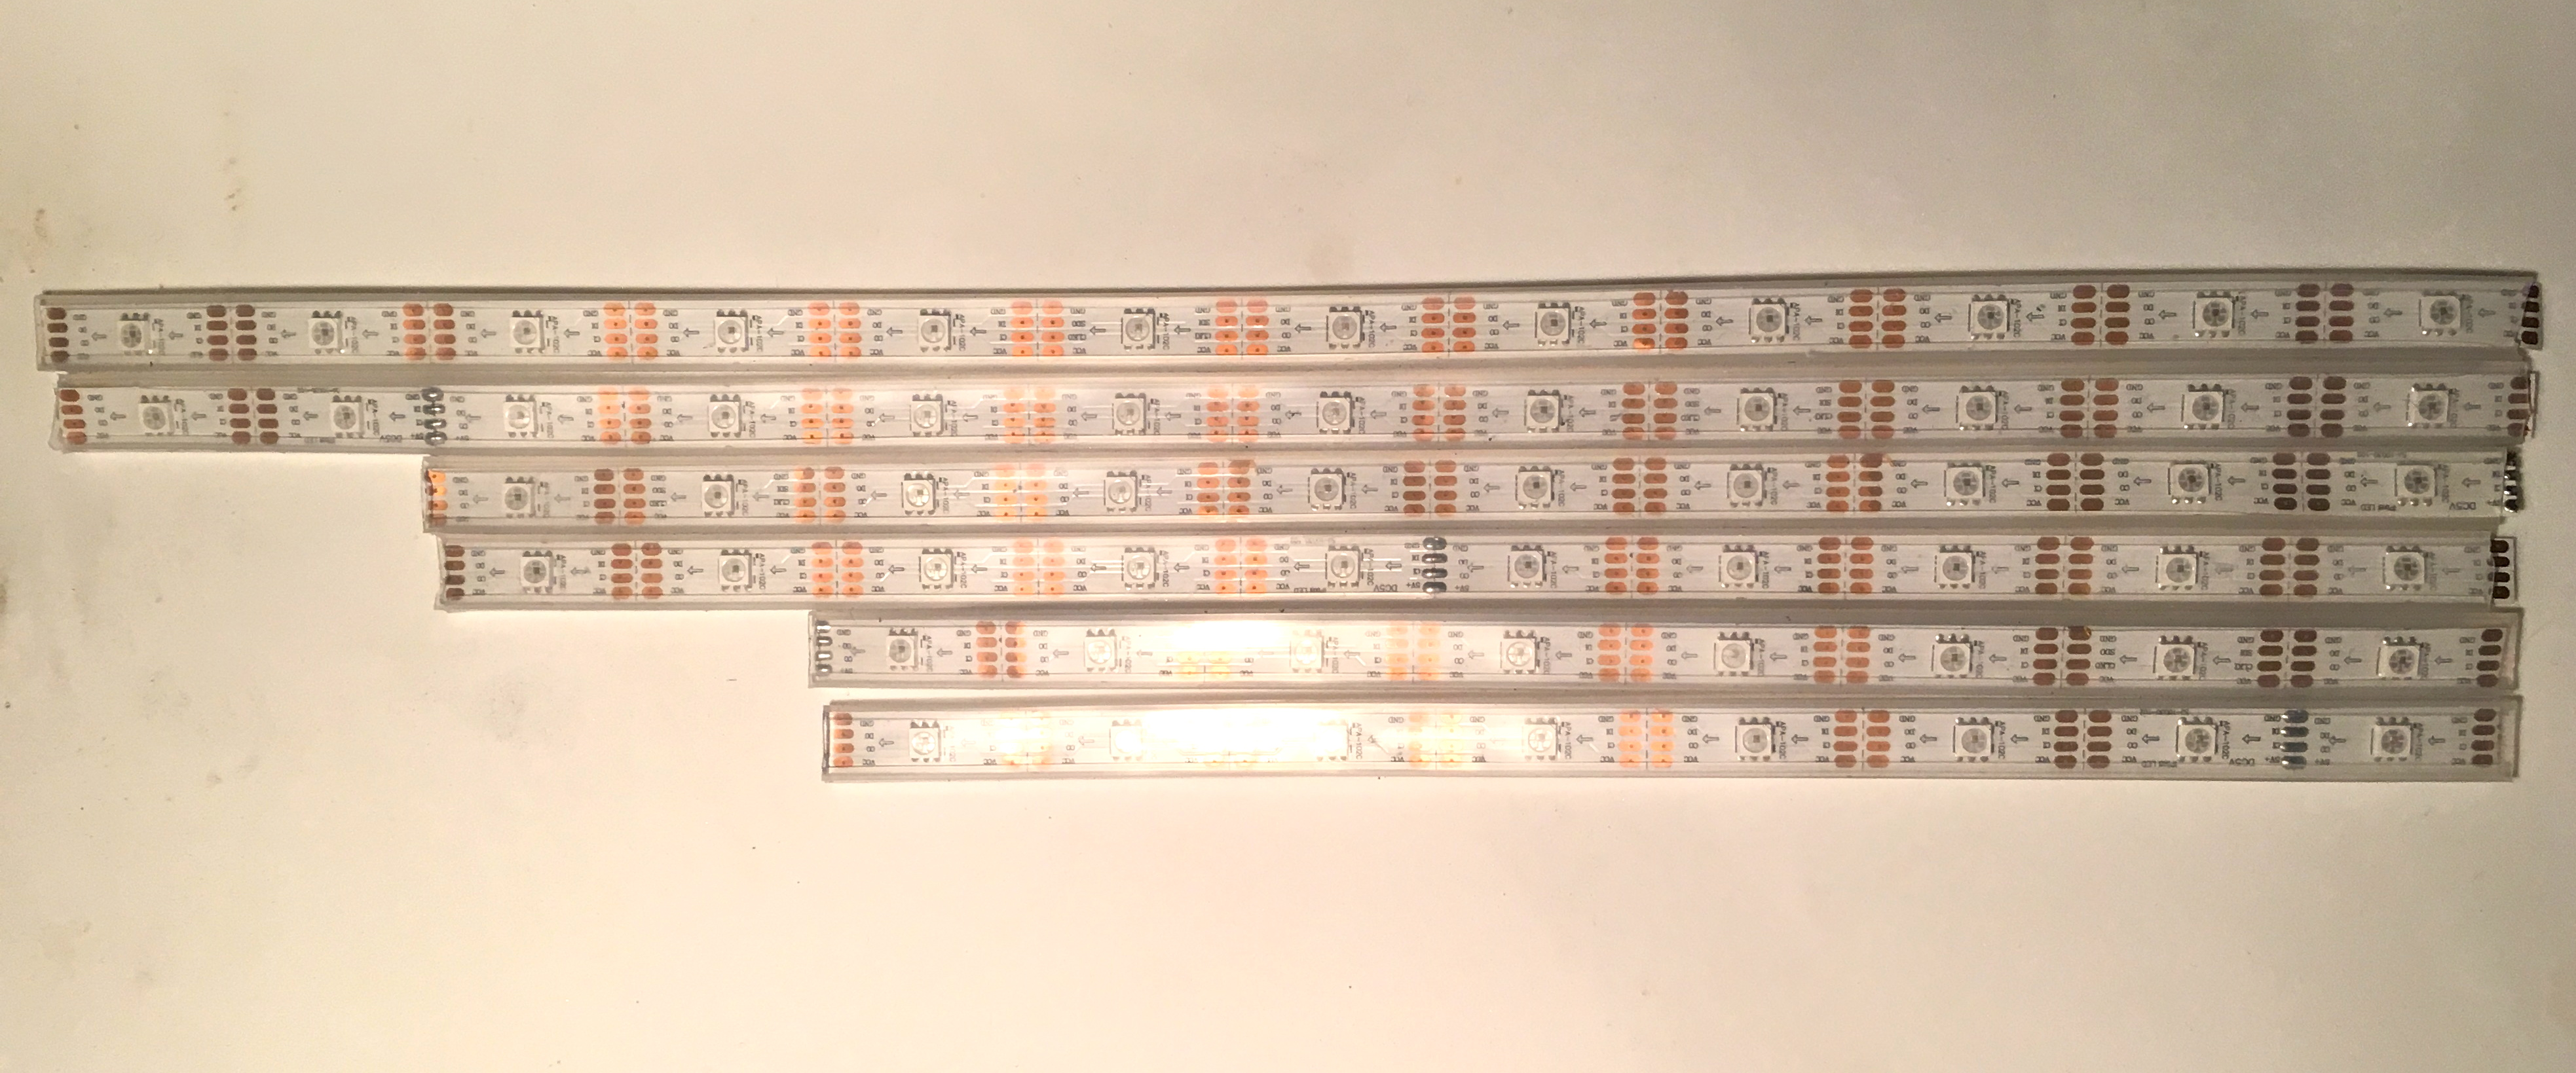 led_strips_IMG_5593.jpg